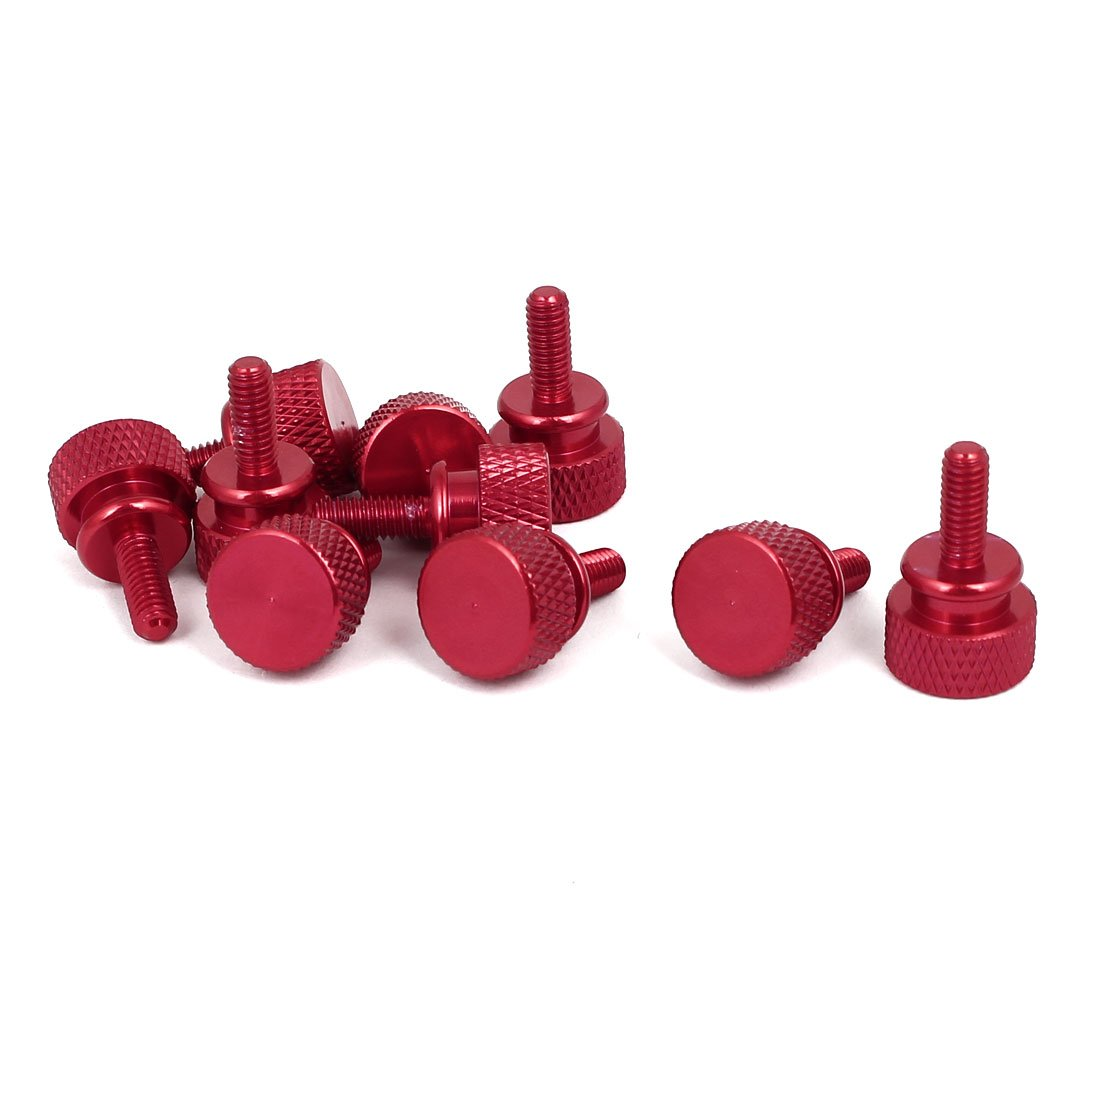 uxcell Computer PC Case M4x10mm Shoulder Type Knurled Thumb Screw Wine Red 10pcs